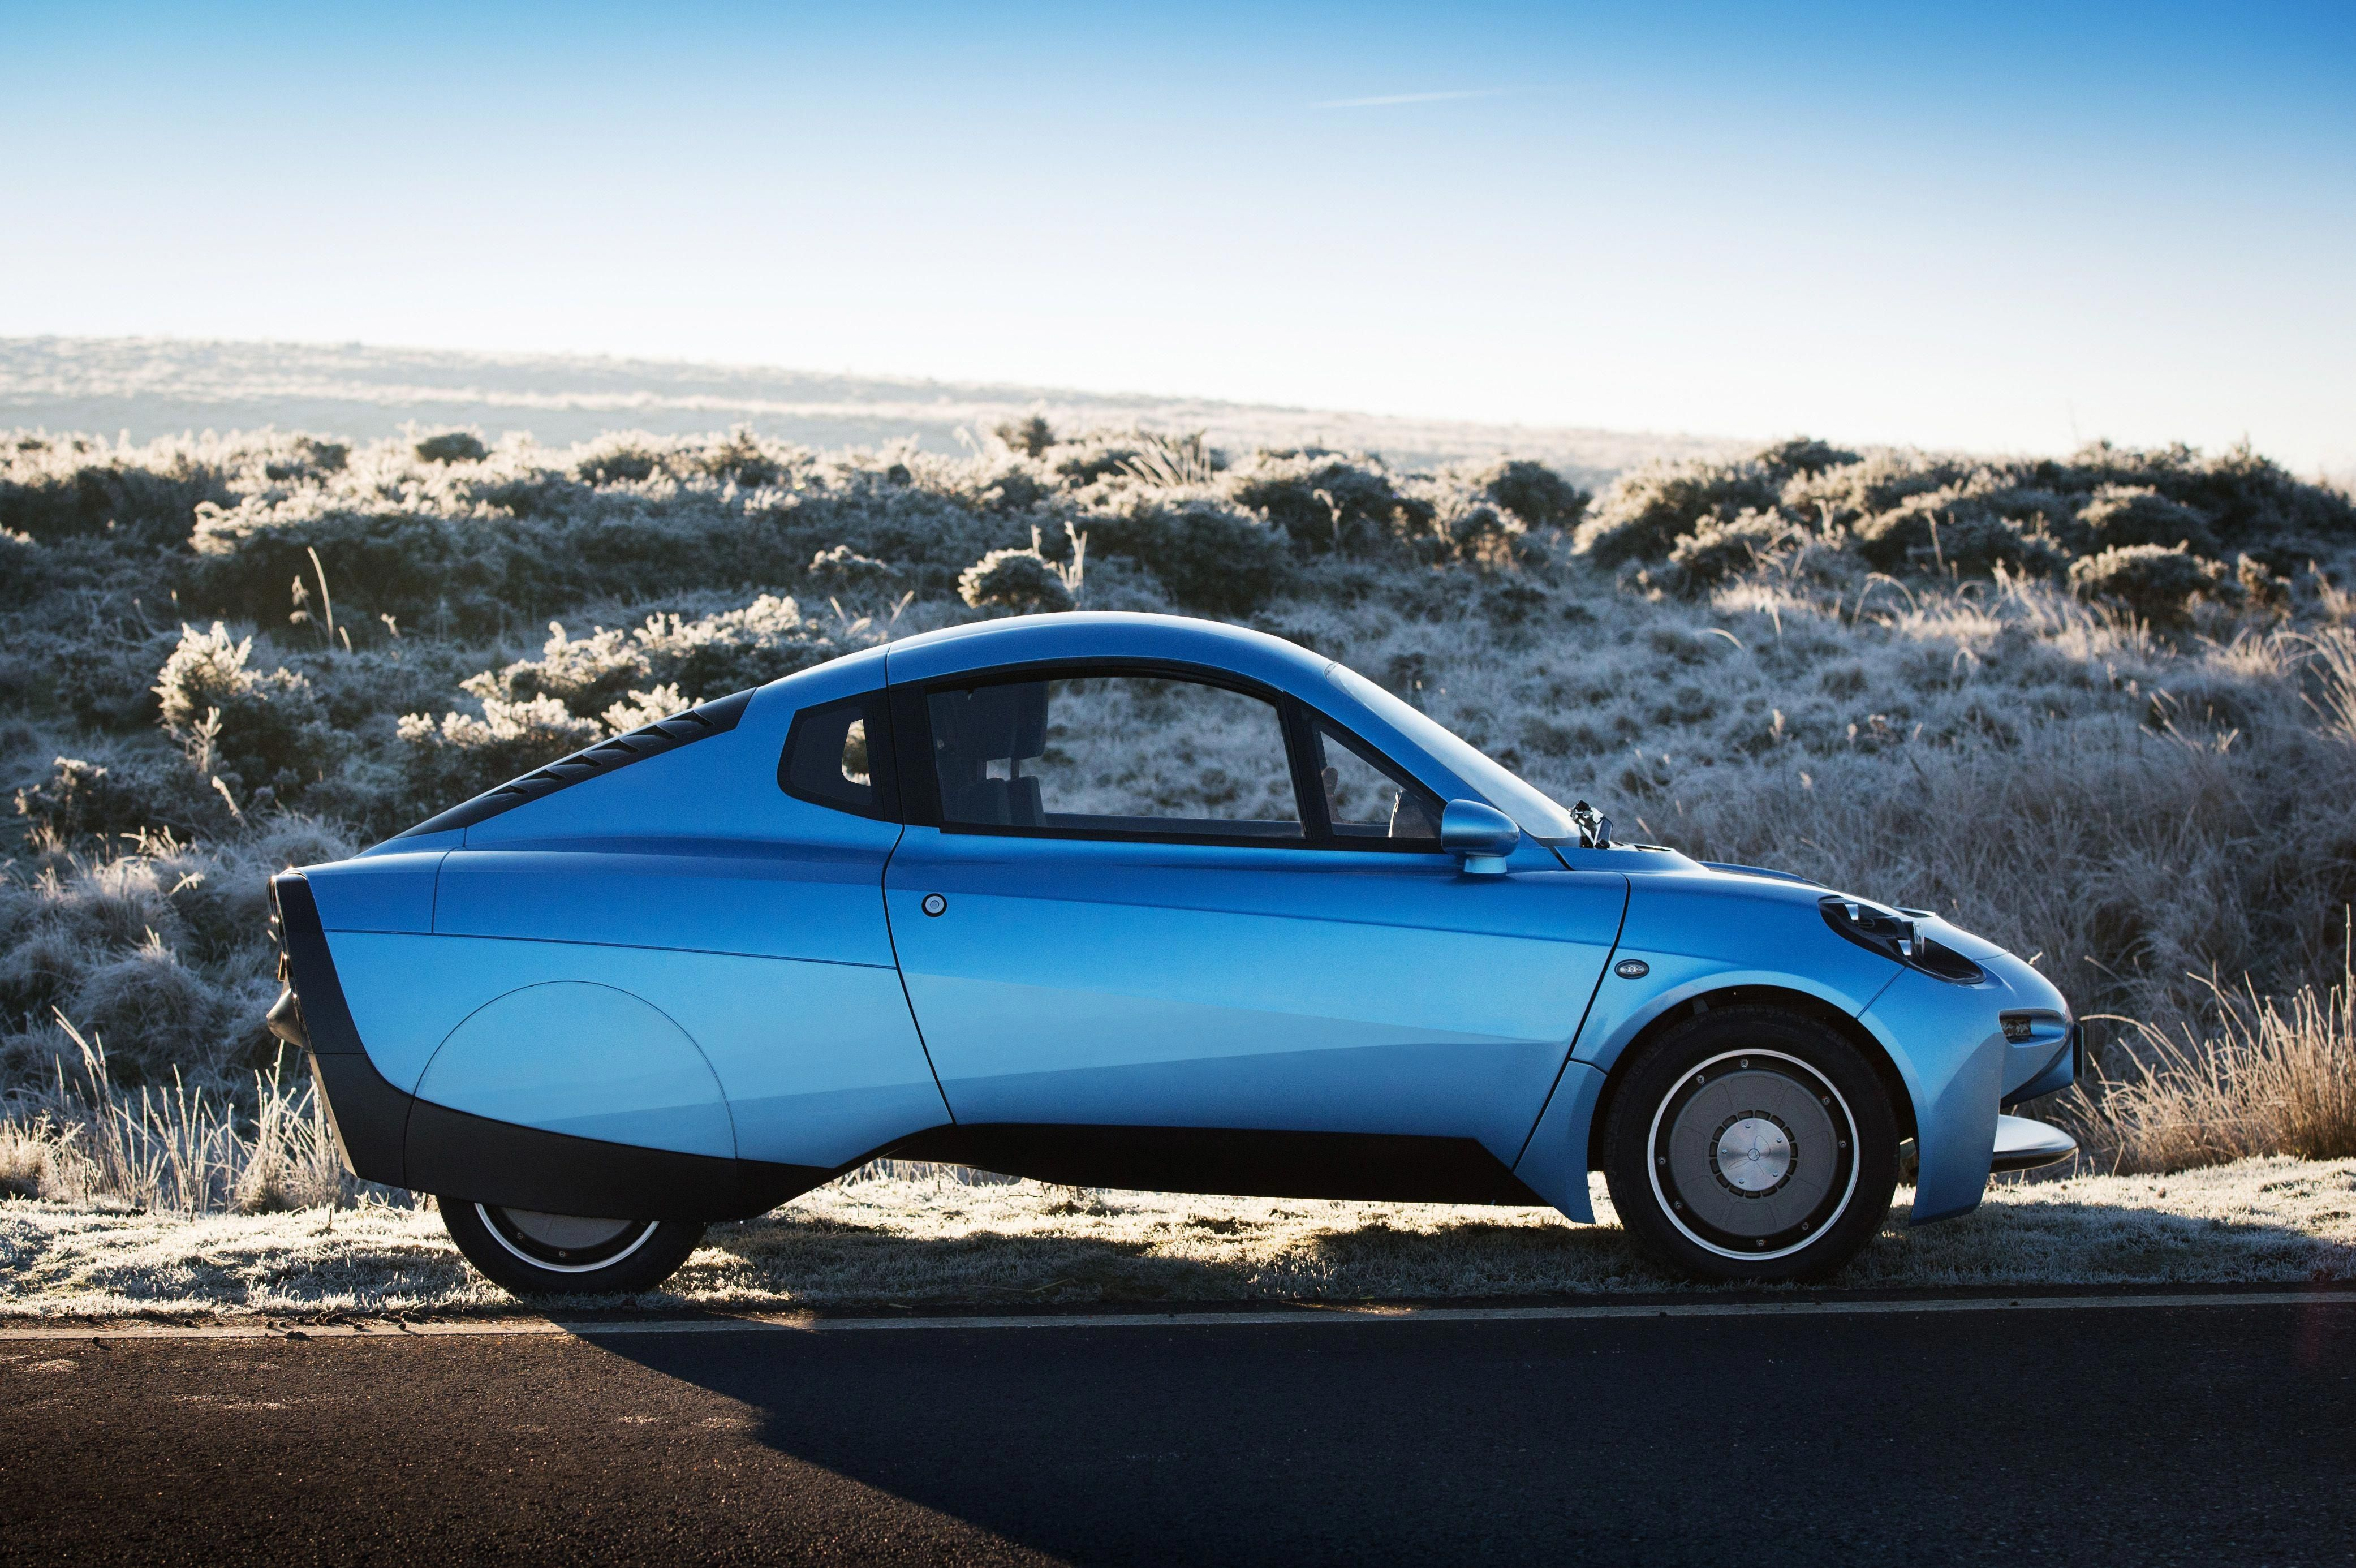 Is this OneofaKind Coupe the Most EcoFriendly Car in